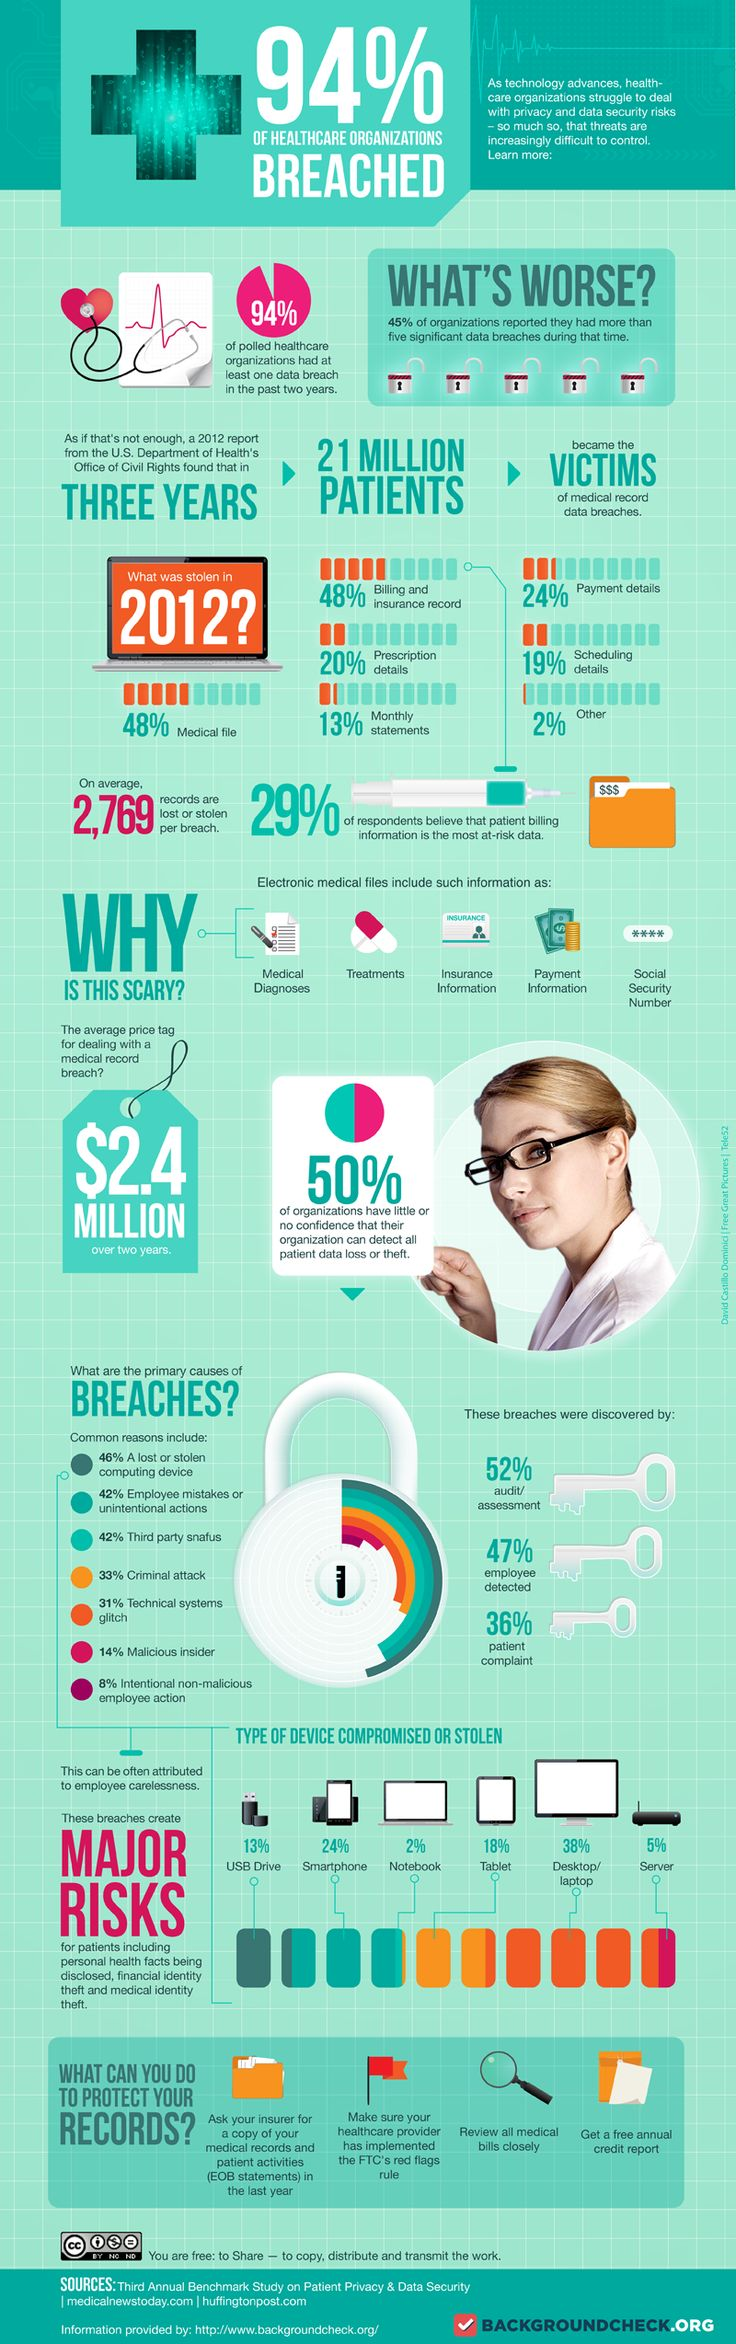 healthcare security breach plan Astronomical, large and small, 2015 healthcare security breaches run the gamut not only in size and expense, but also in the variety of ways hackers, employees, insiders and outsiders manage to get at personal health information.